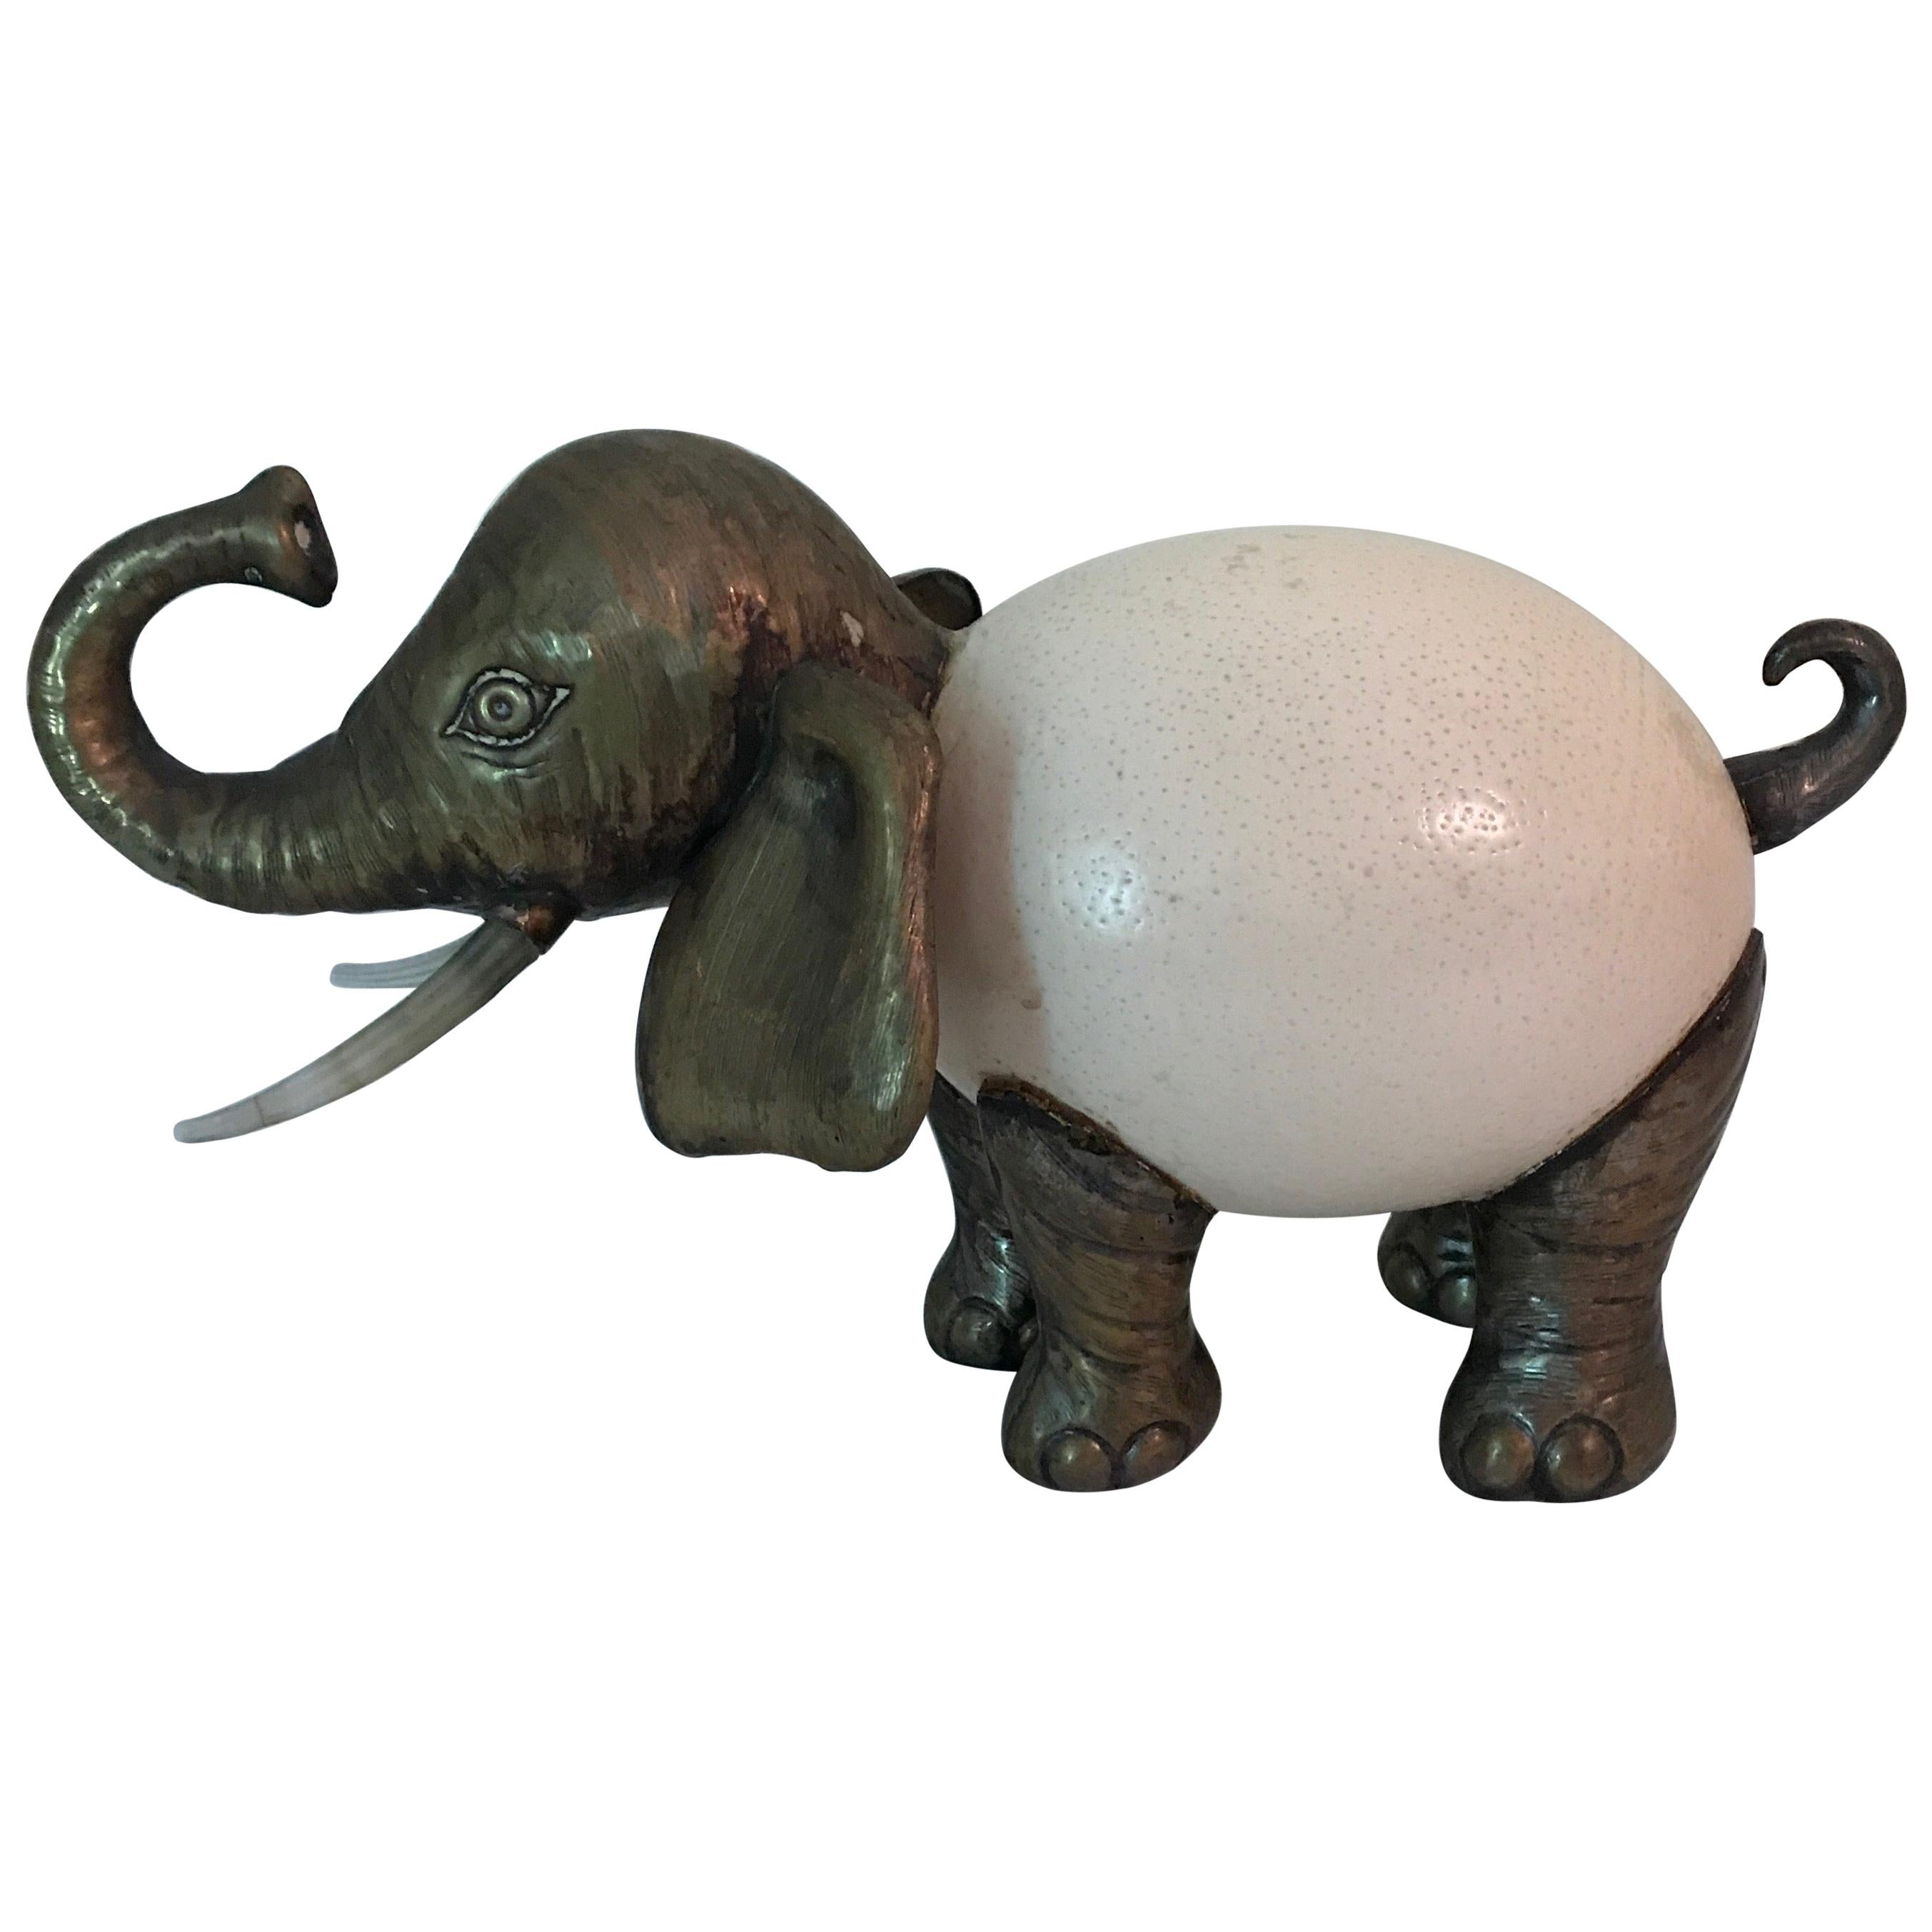 Vintage Ostrich Egg Elephant Sculpture in the style of Anthony Redmile